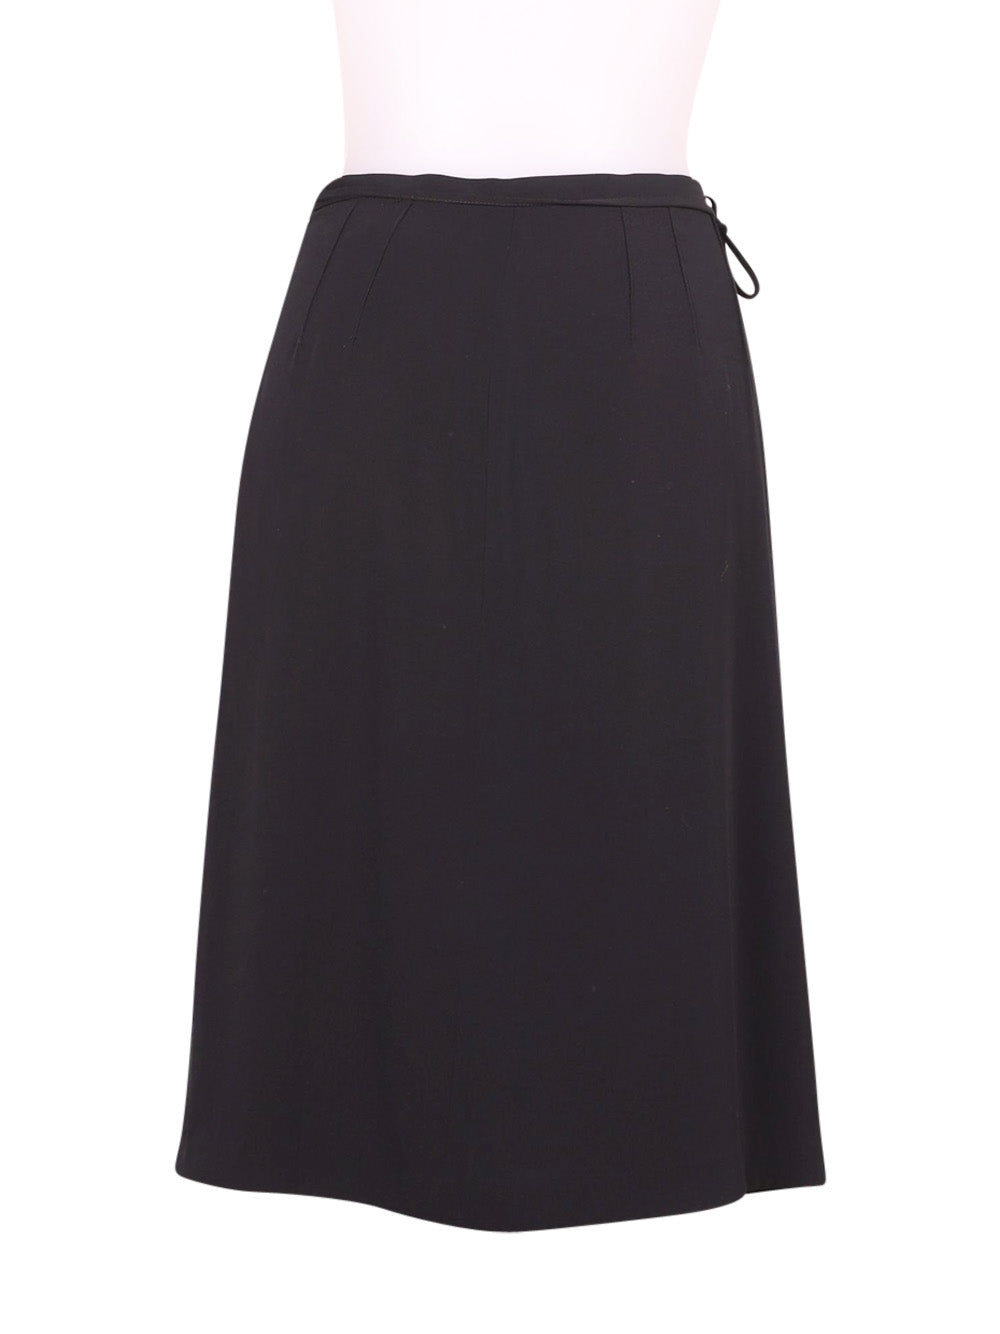 Back photo of Preloved Stefanel Black Woman's skirt - size 8/S